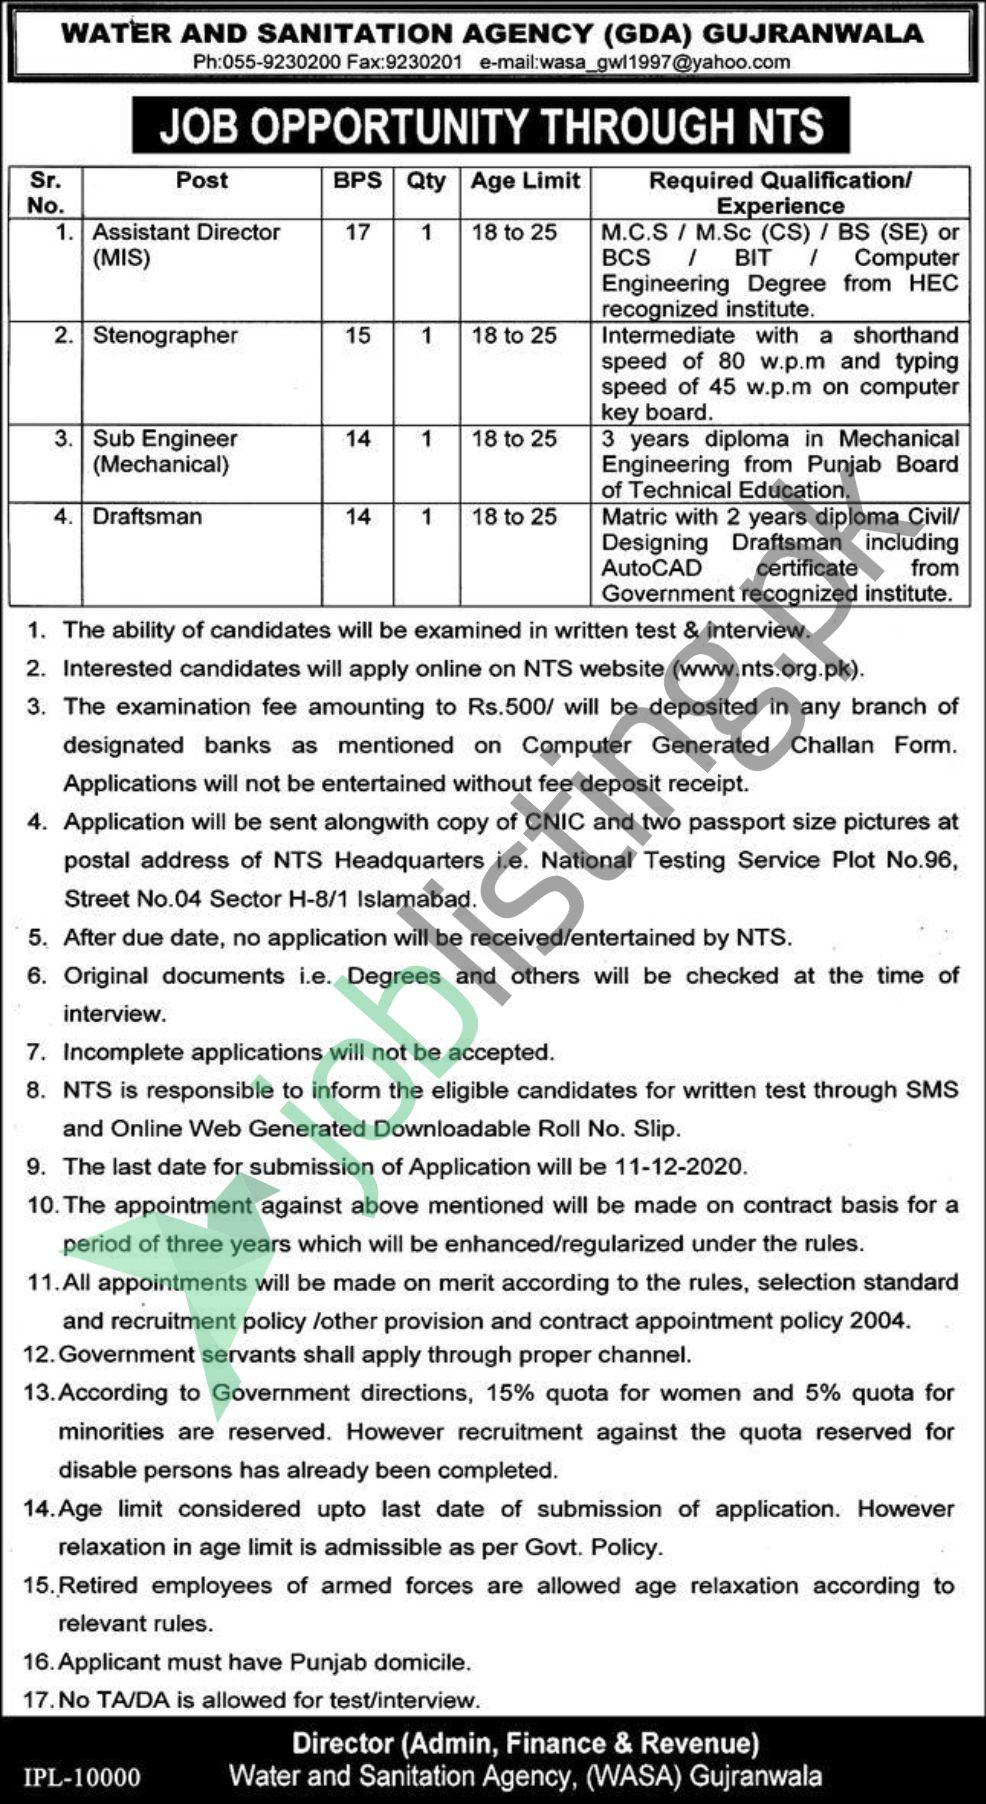 NTS jobs Nov 2020 Water & Sanitation Agency (GDA) Gujranwala